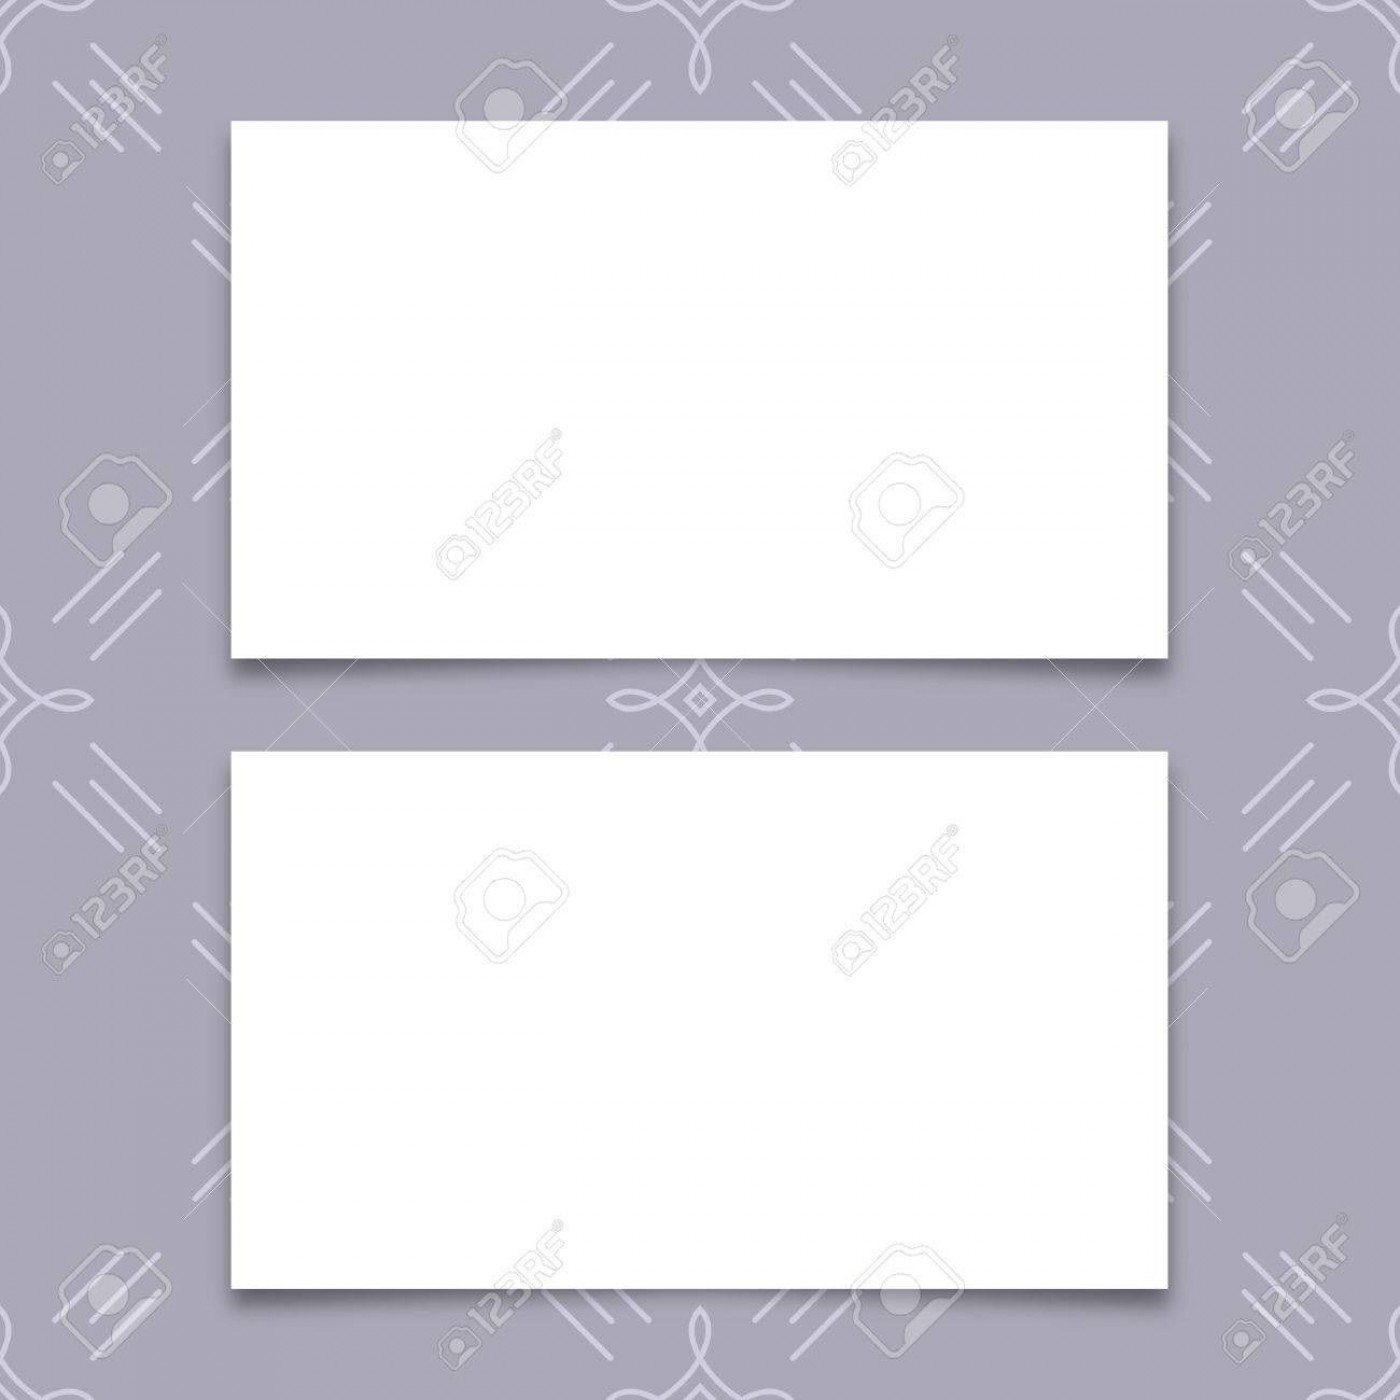 005 Fantastic Plain Busines Card Template Inspiration  White Free Download Blank Printable Word 20101400